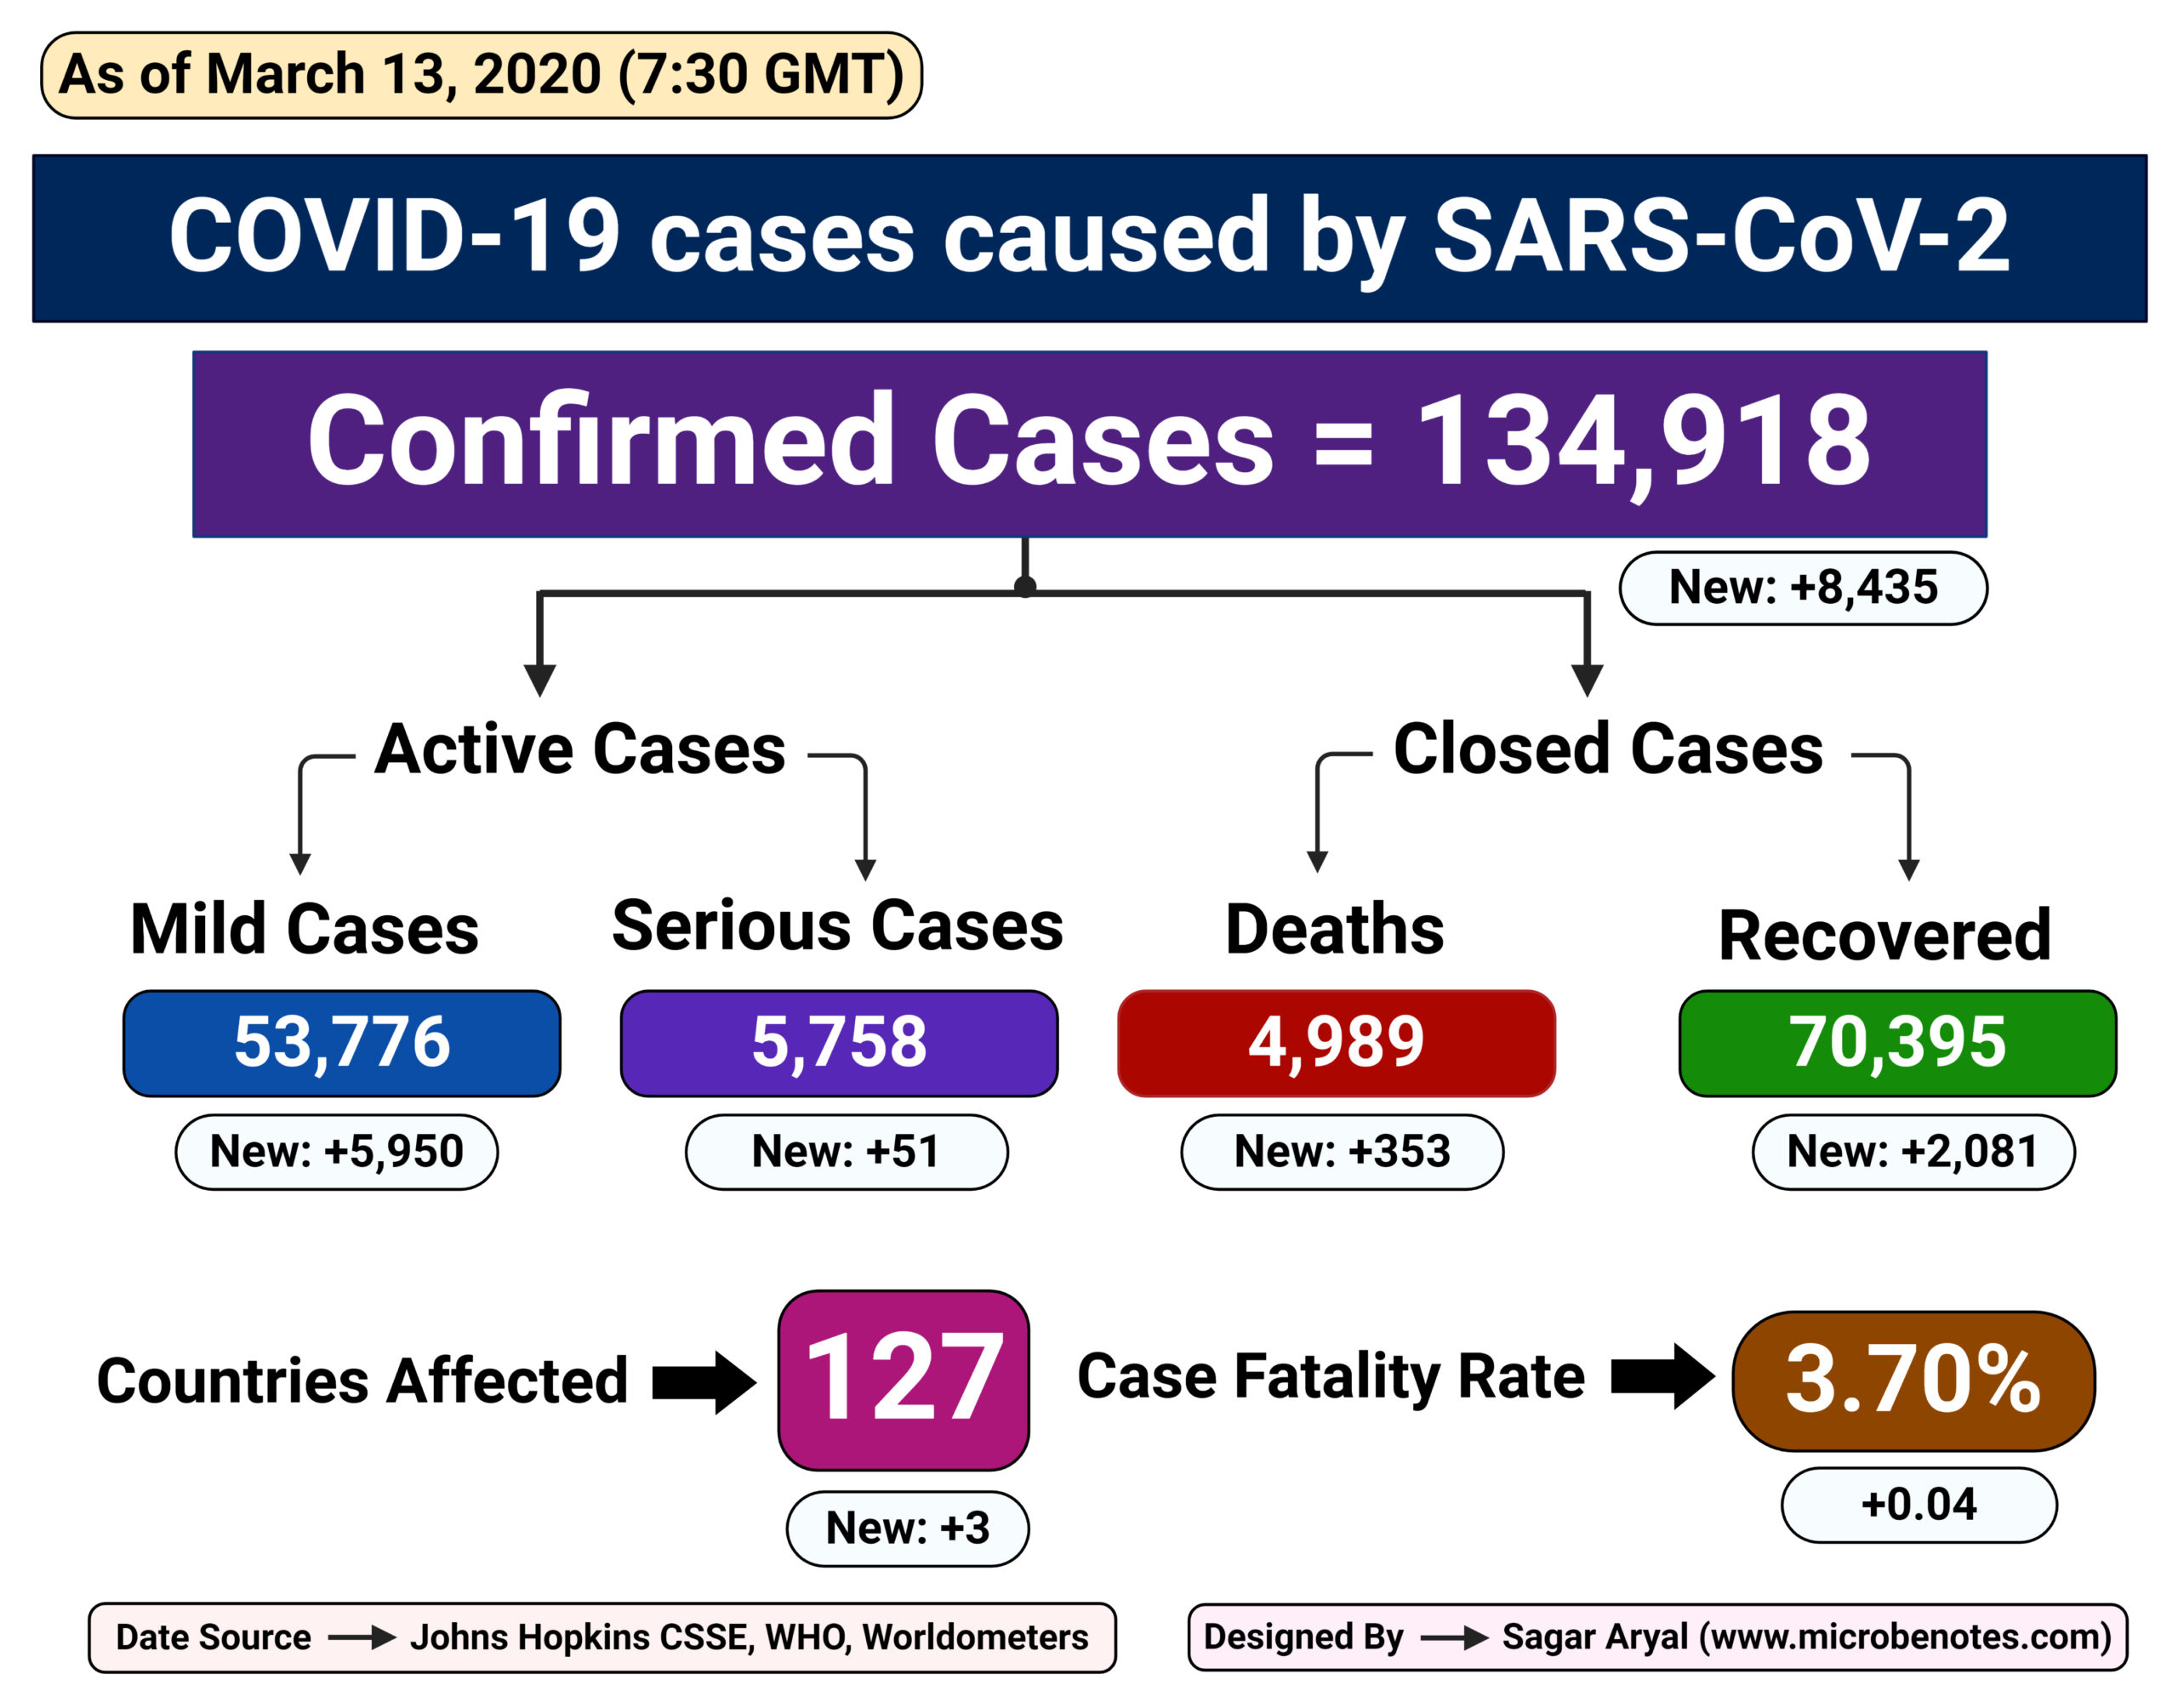 Epidemiology of COVID-19 caused by SARS-CoV-2 as of March 13, 2020